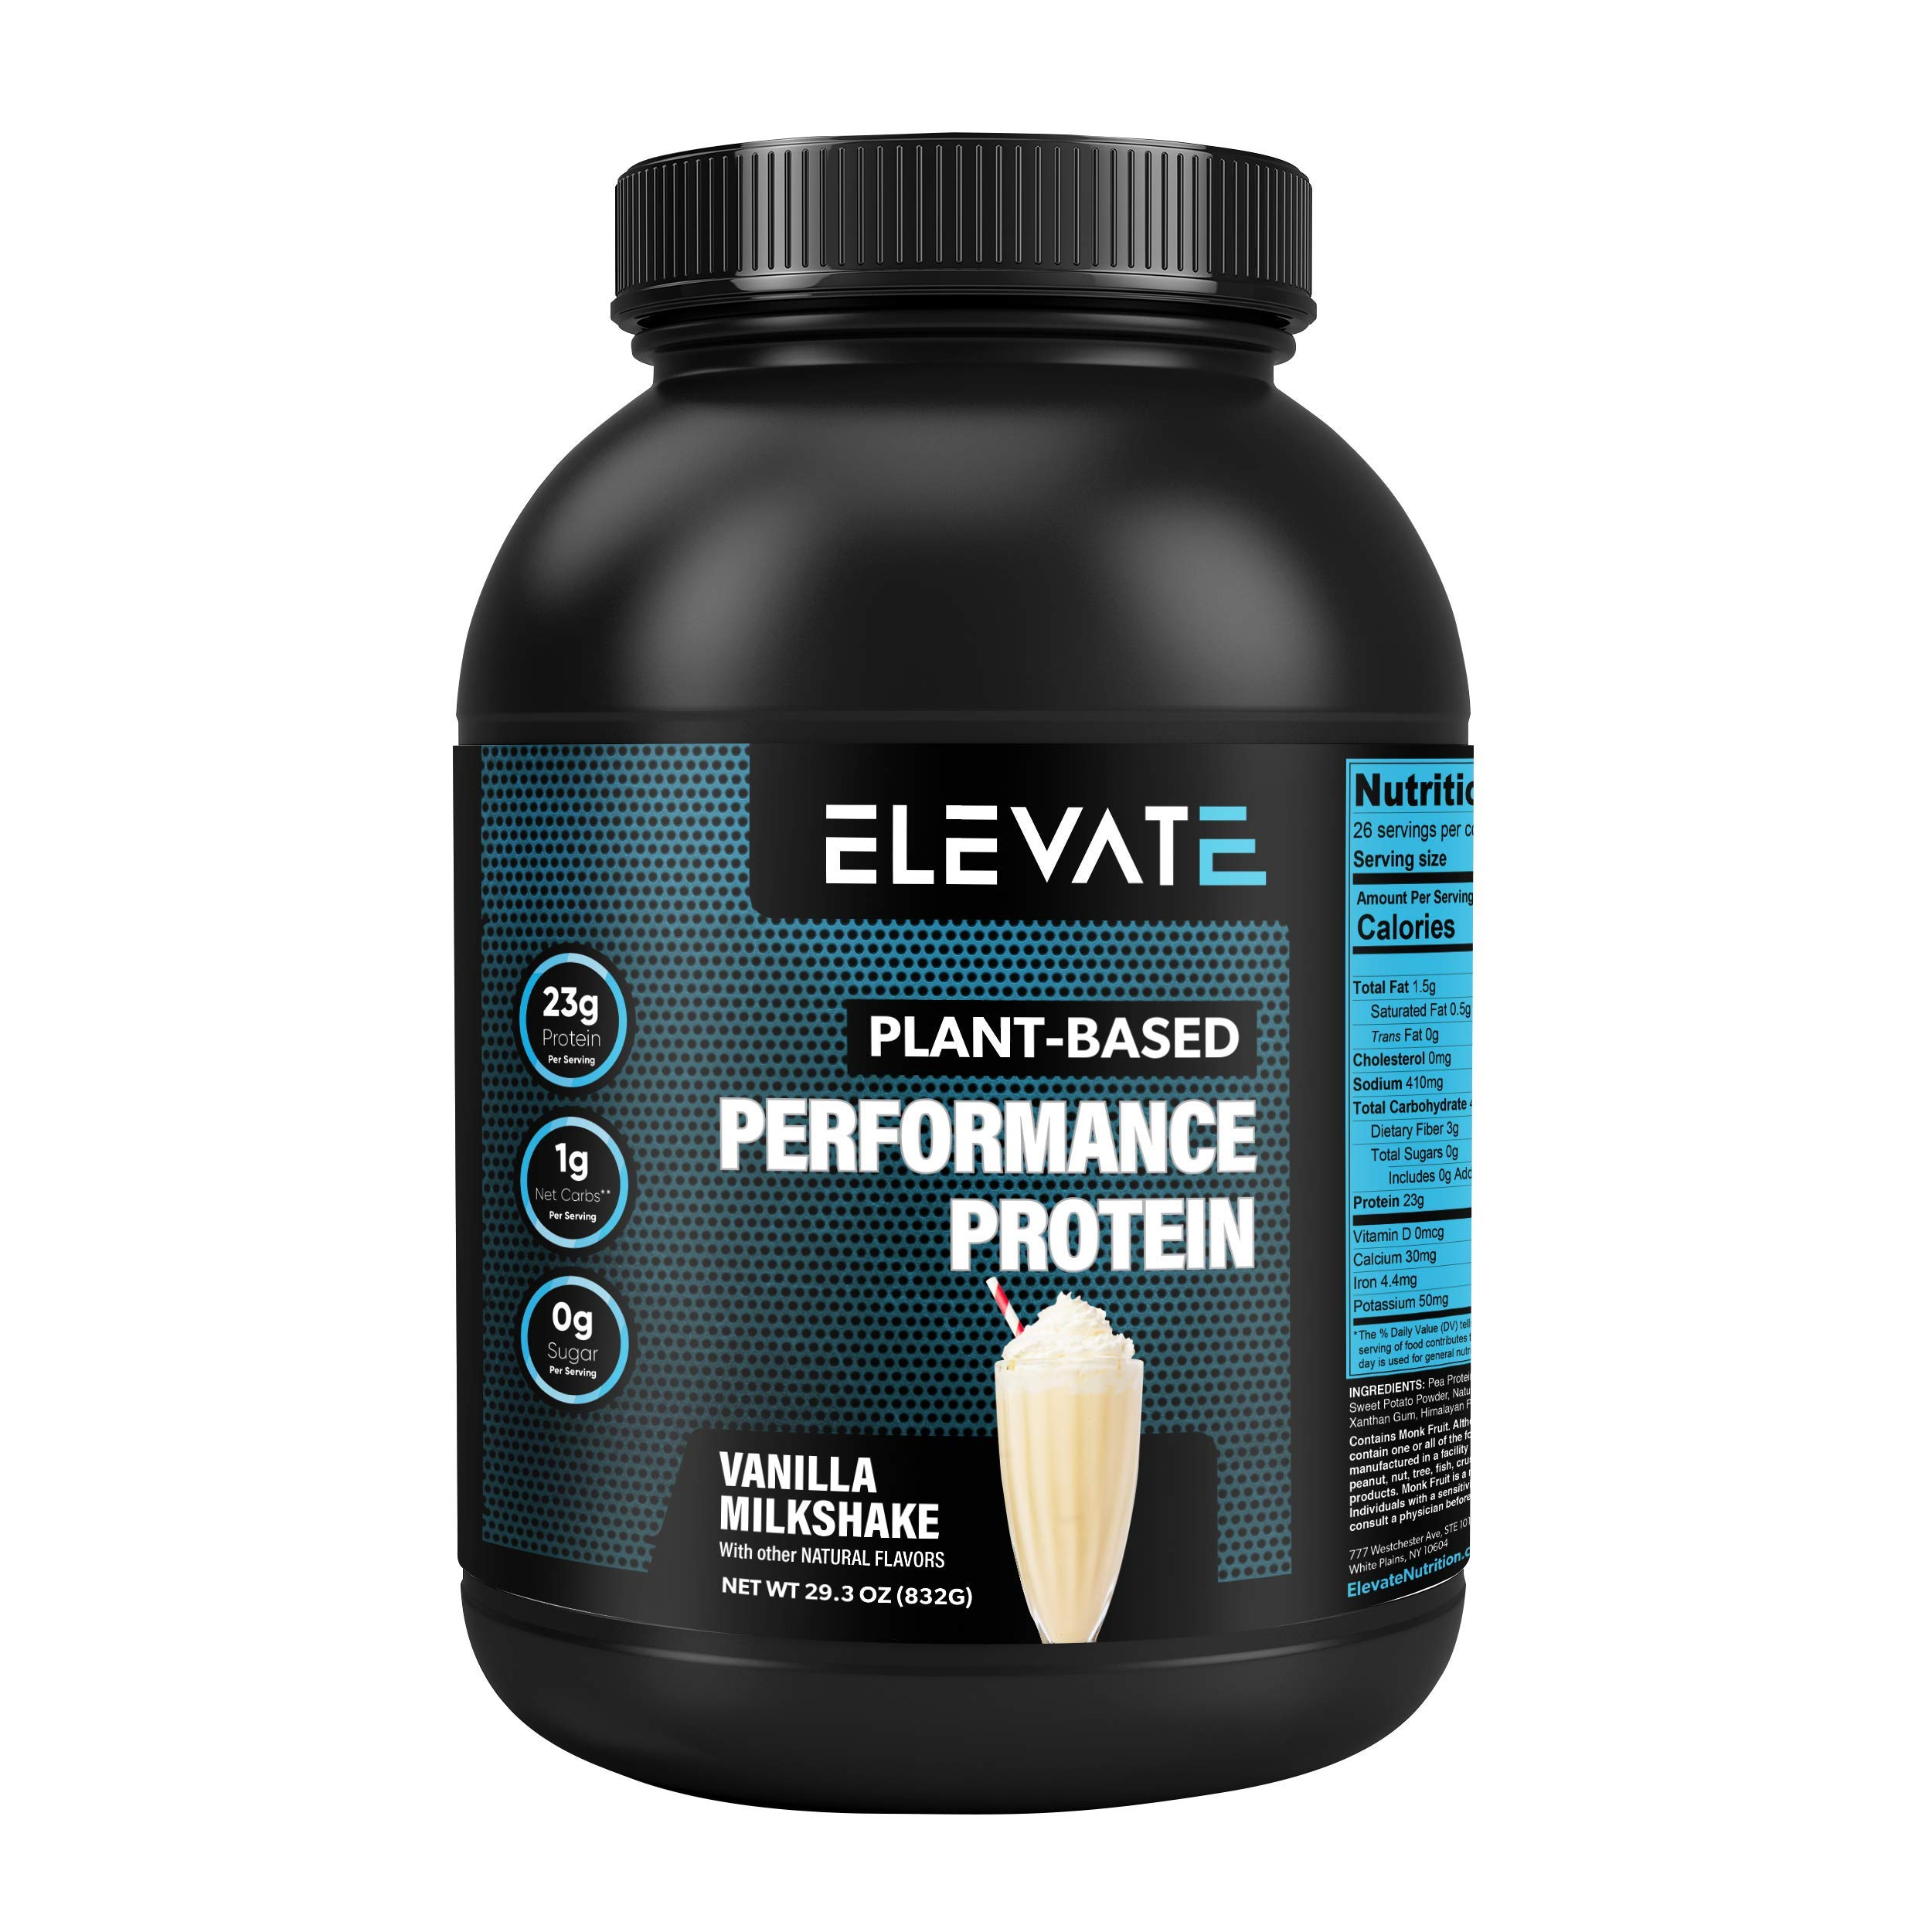 Elevate Nutrition Plant Based Vegan Performance Protein, 26 Servings, Low Carb, NO Sugar, High Protein, High BCAAs, High Glutamine, GMO-Free, Dairy and Soy Free, NO Artificial (Vanilla Milkshake) by Elevate